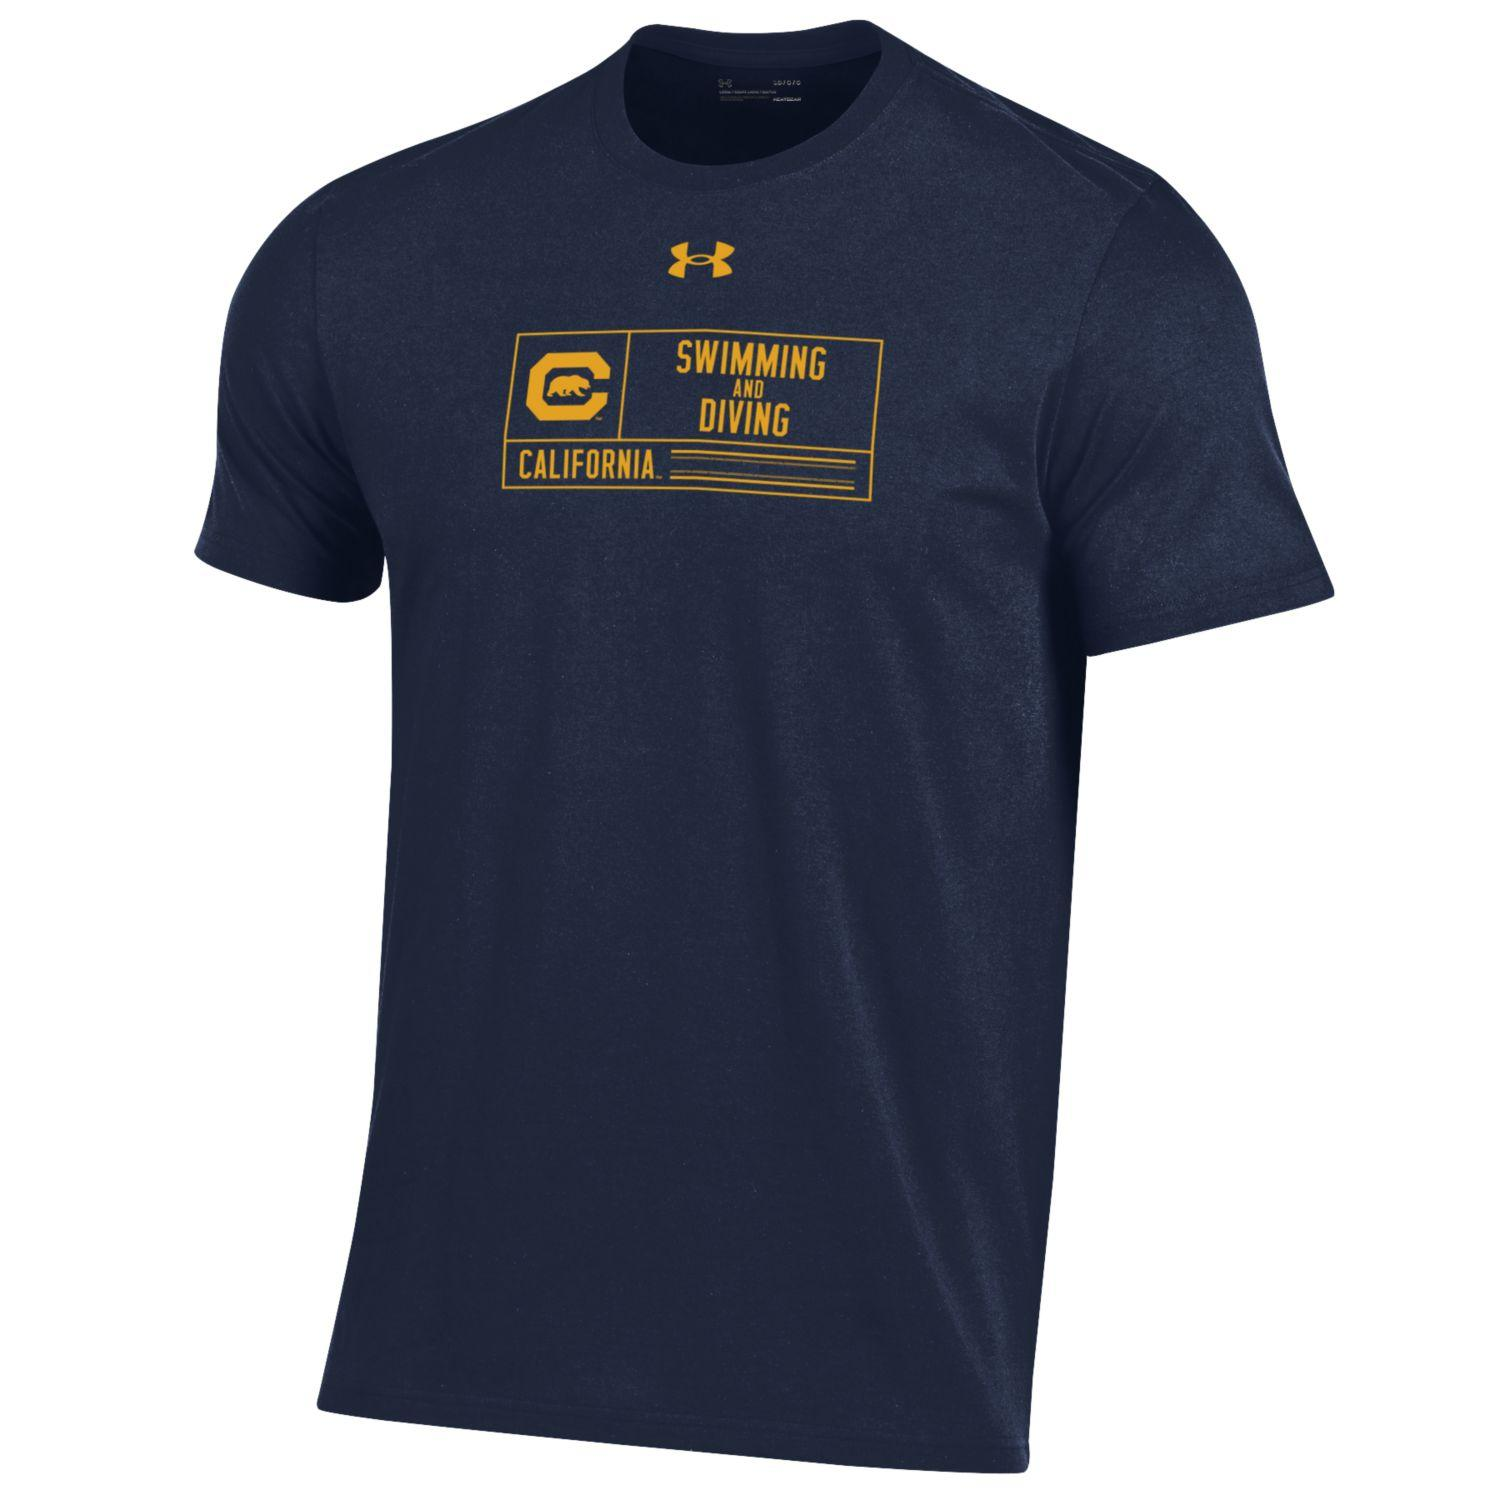 M Performance Cotton SS Swimming & Diving Tee